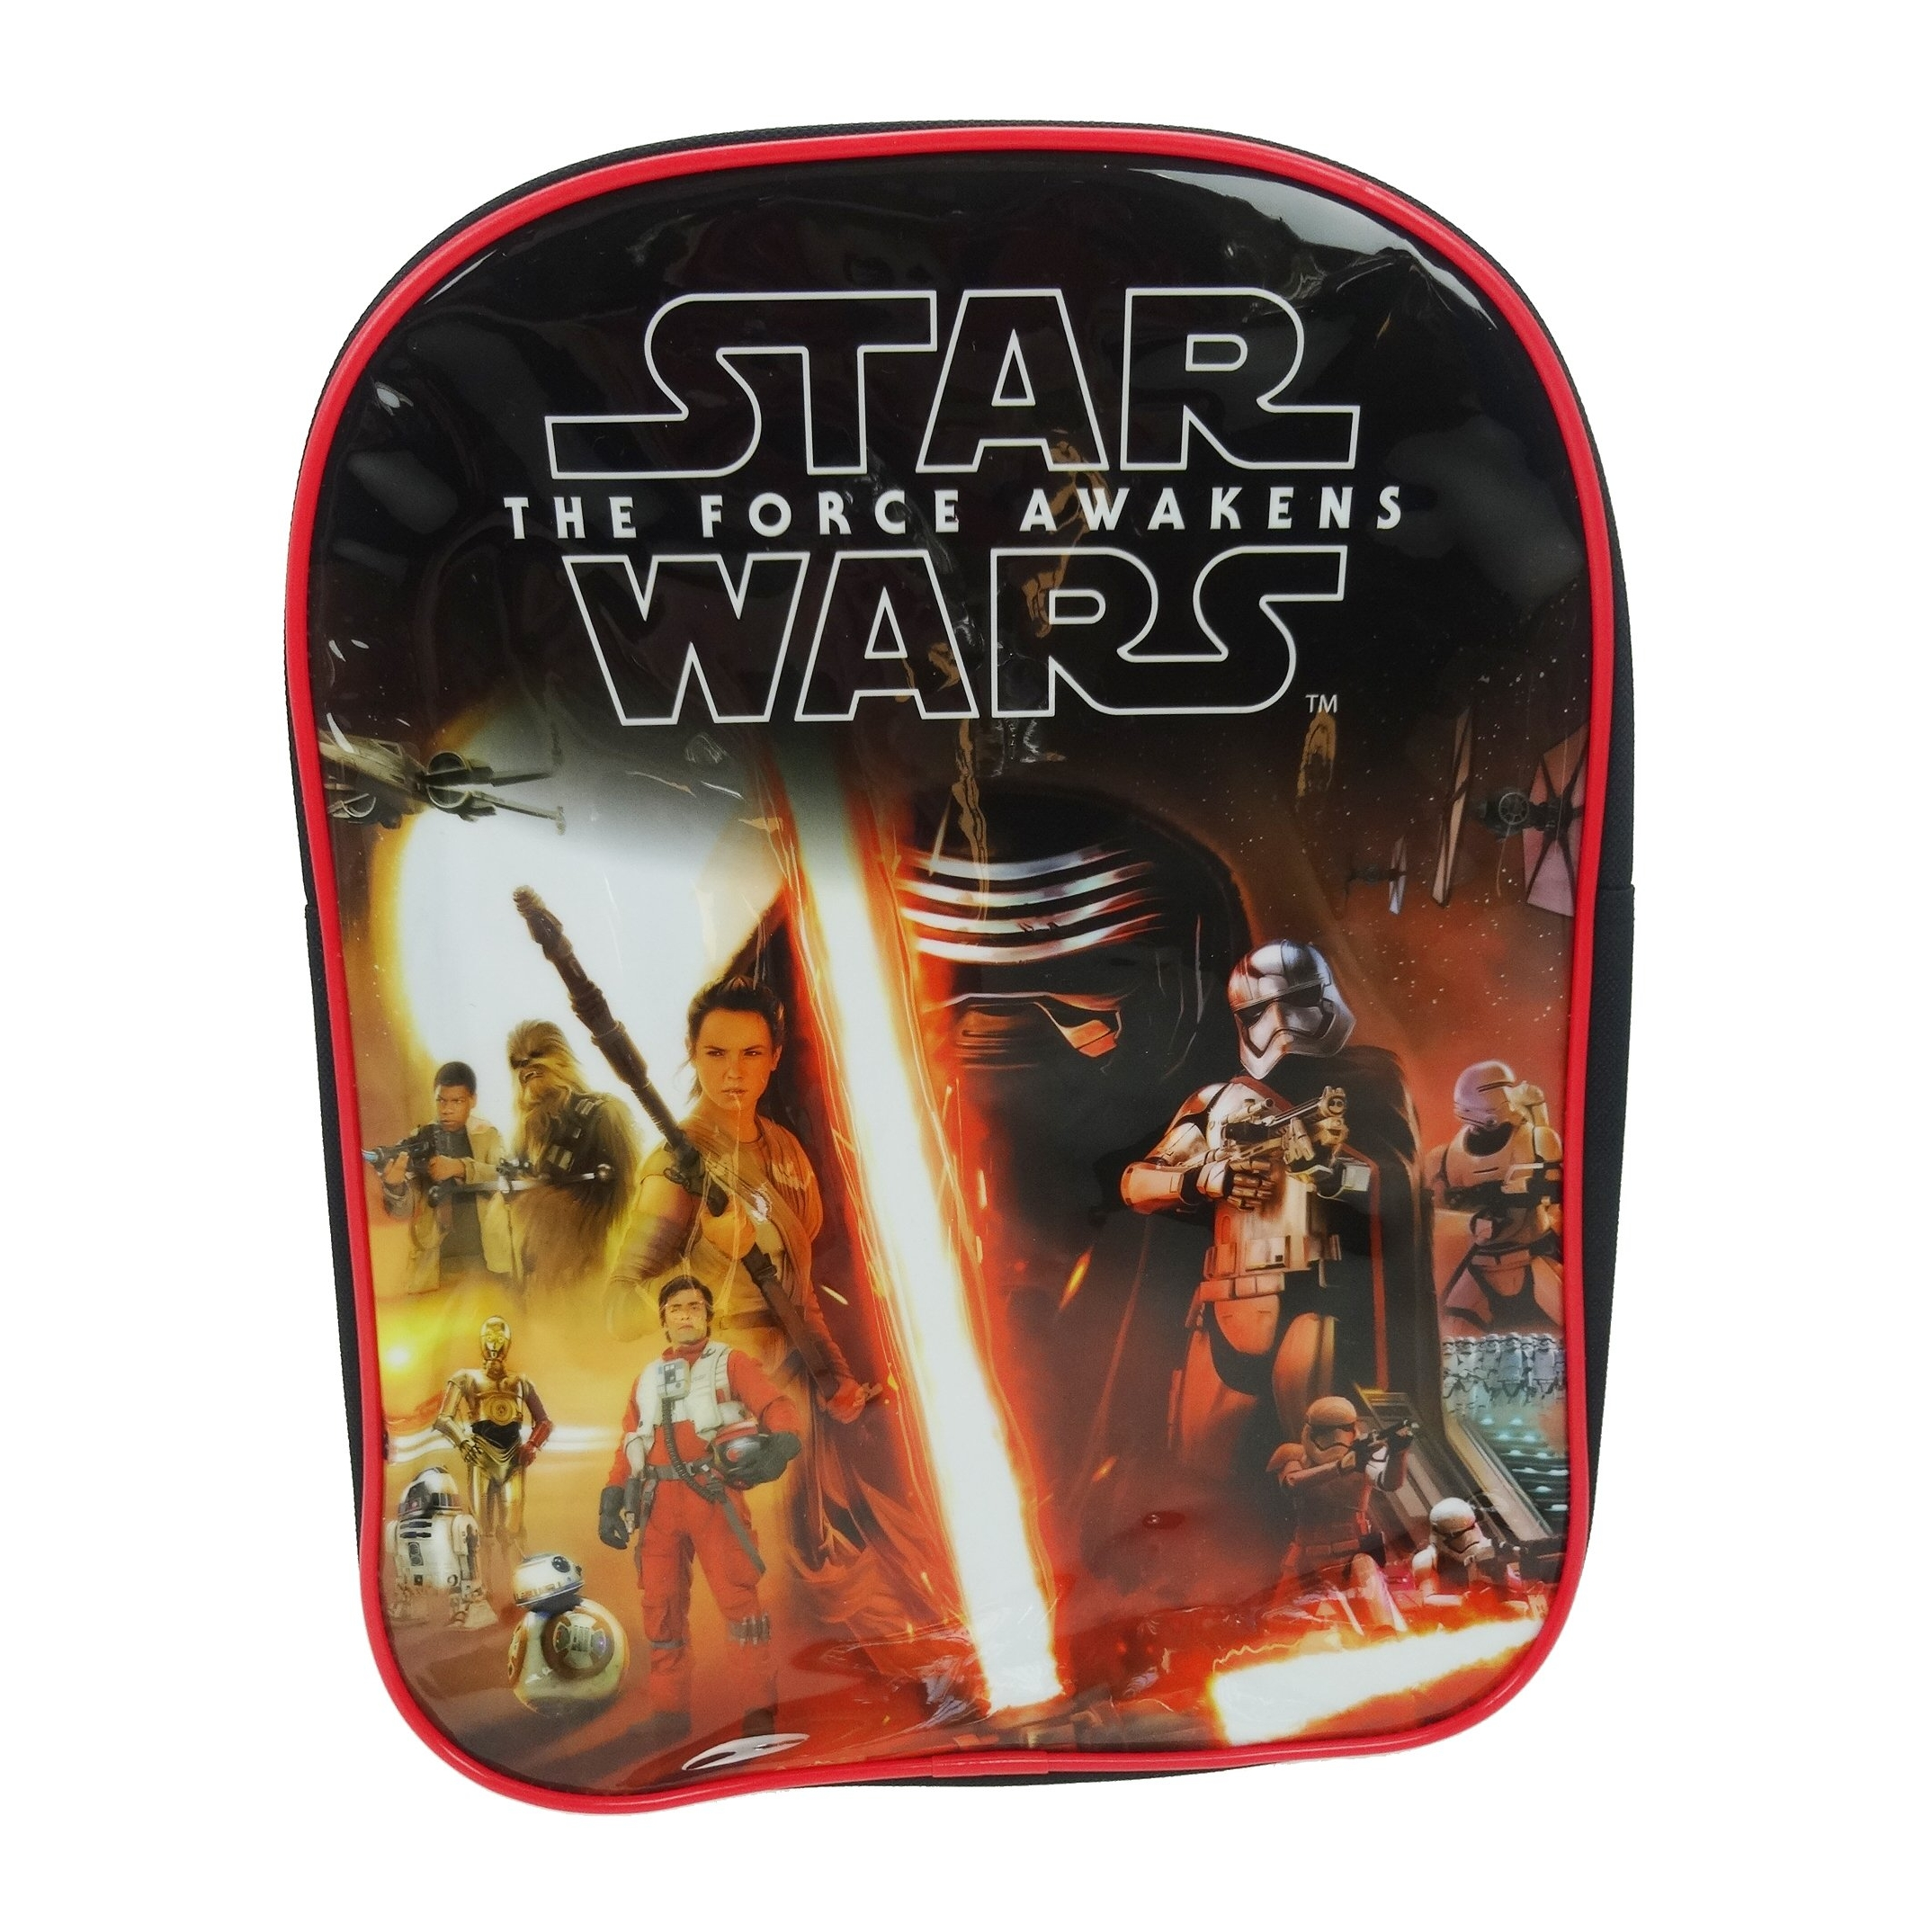 Star Wars Backpack The Force Awakens Rule Sparkle Gift